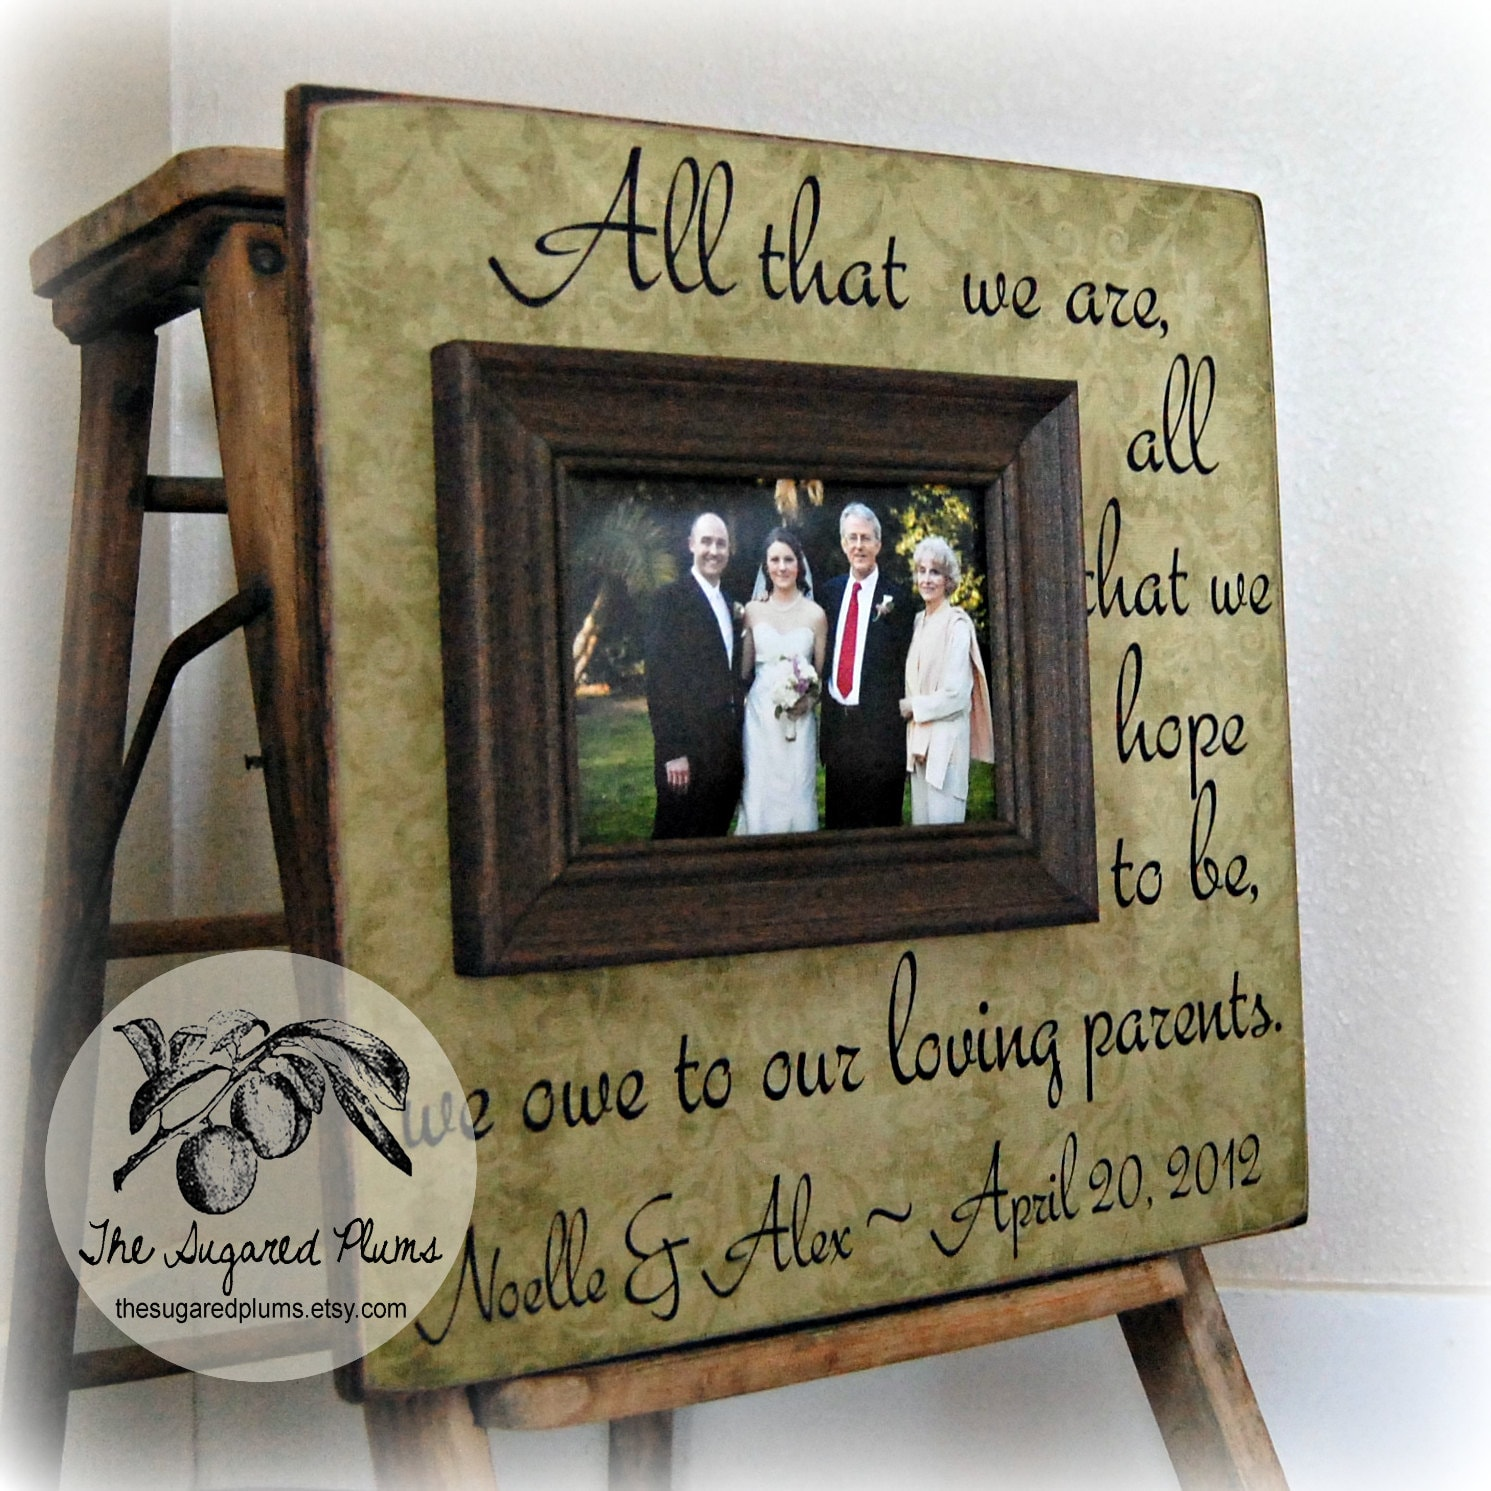 Gifts For Parents Wedding Thank You: Parents Thank You Gifts Wedding Personalized Picture Frame